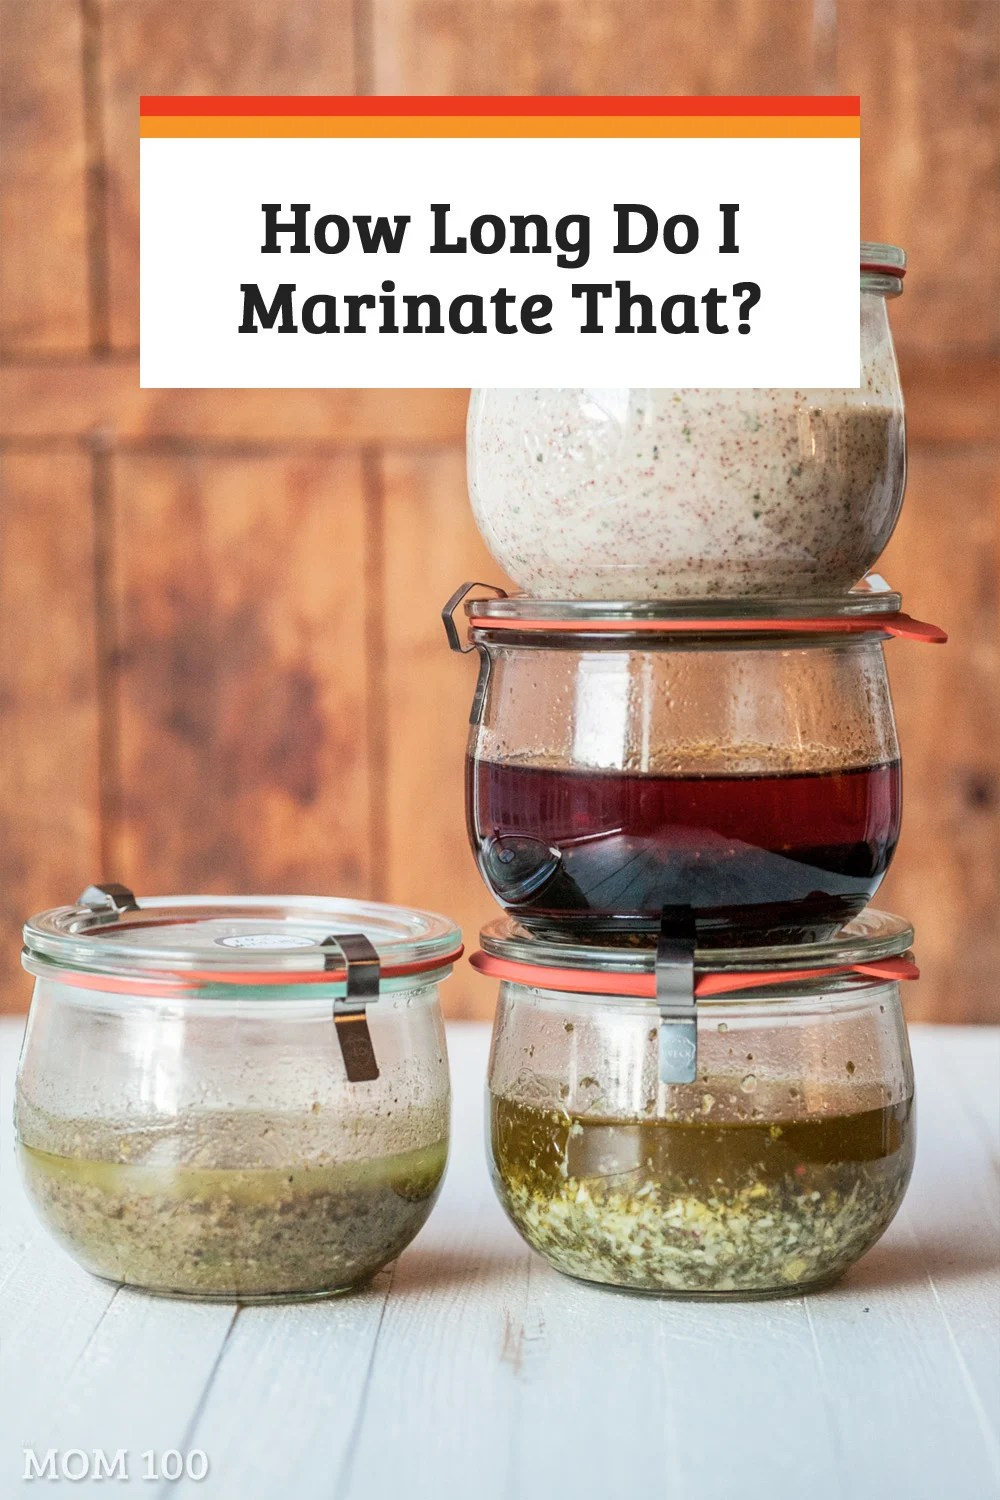 How Long To Marinate Chicken?  And steaks, fish, shrimp, pork, tofu, vegetables.... a guide to how long to marinate different foods (and marinade recipes!).